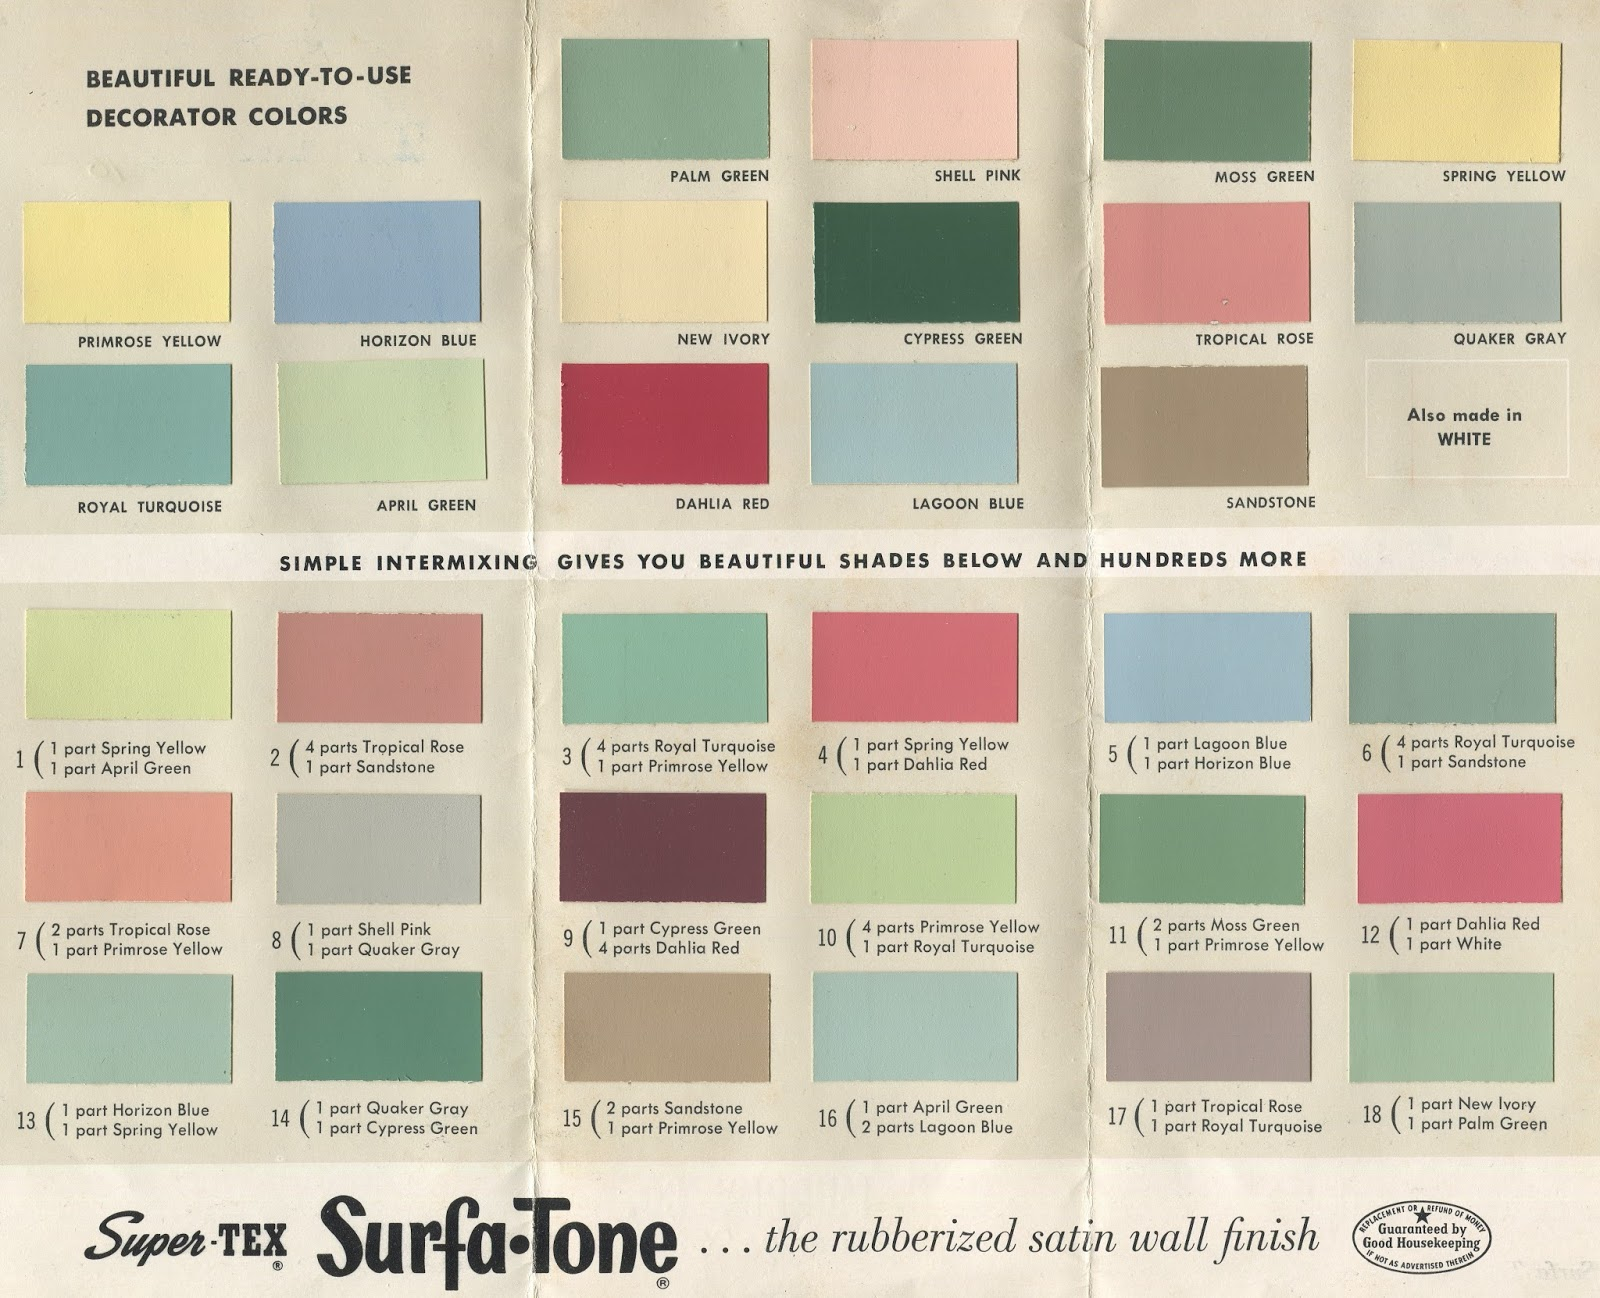 Dull Tool Dim Bulb SurfaTone Tex Products MidCentury Modern - Midcentury modern colors